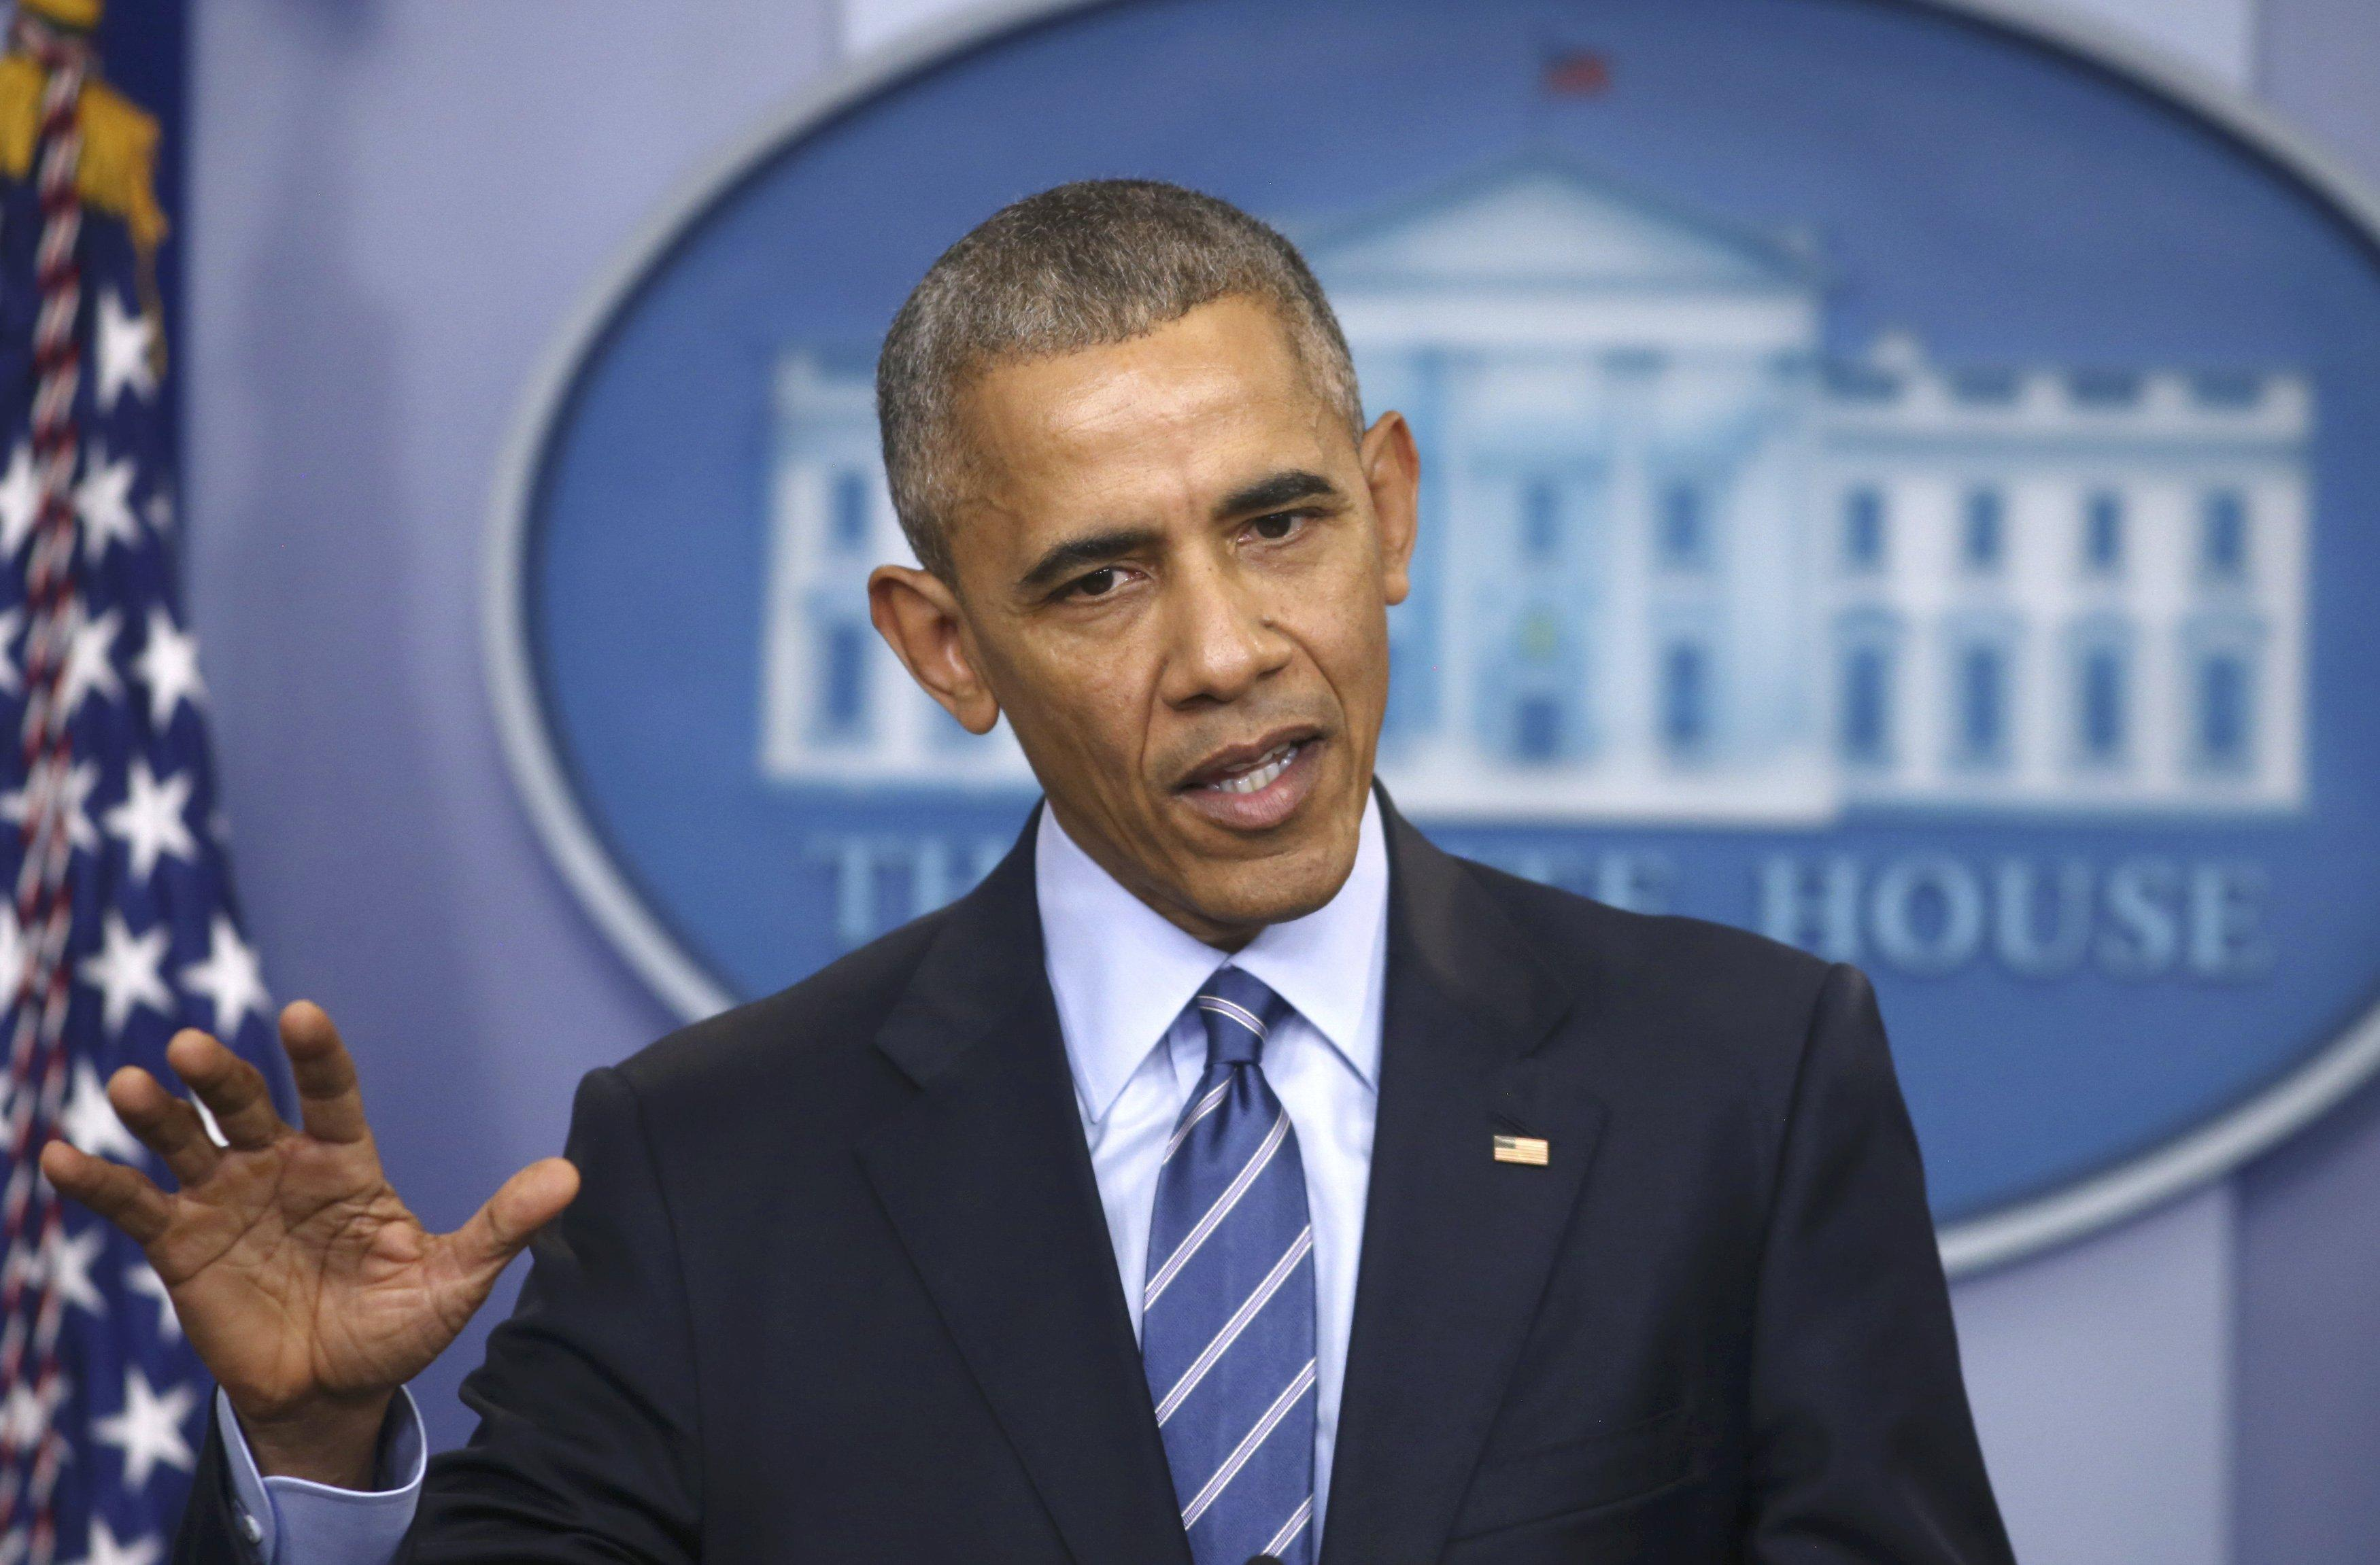 Obama Press Conference The President Says Electoral